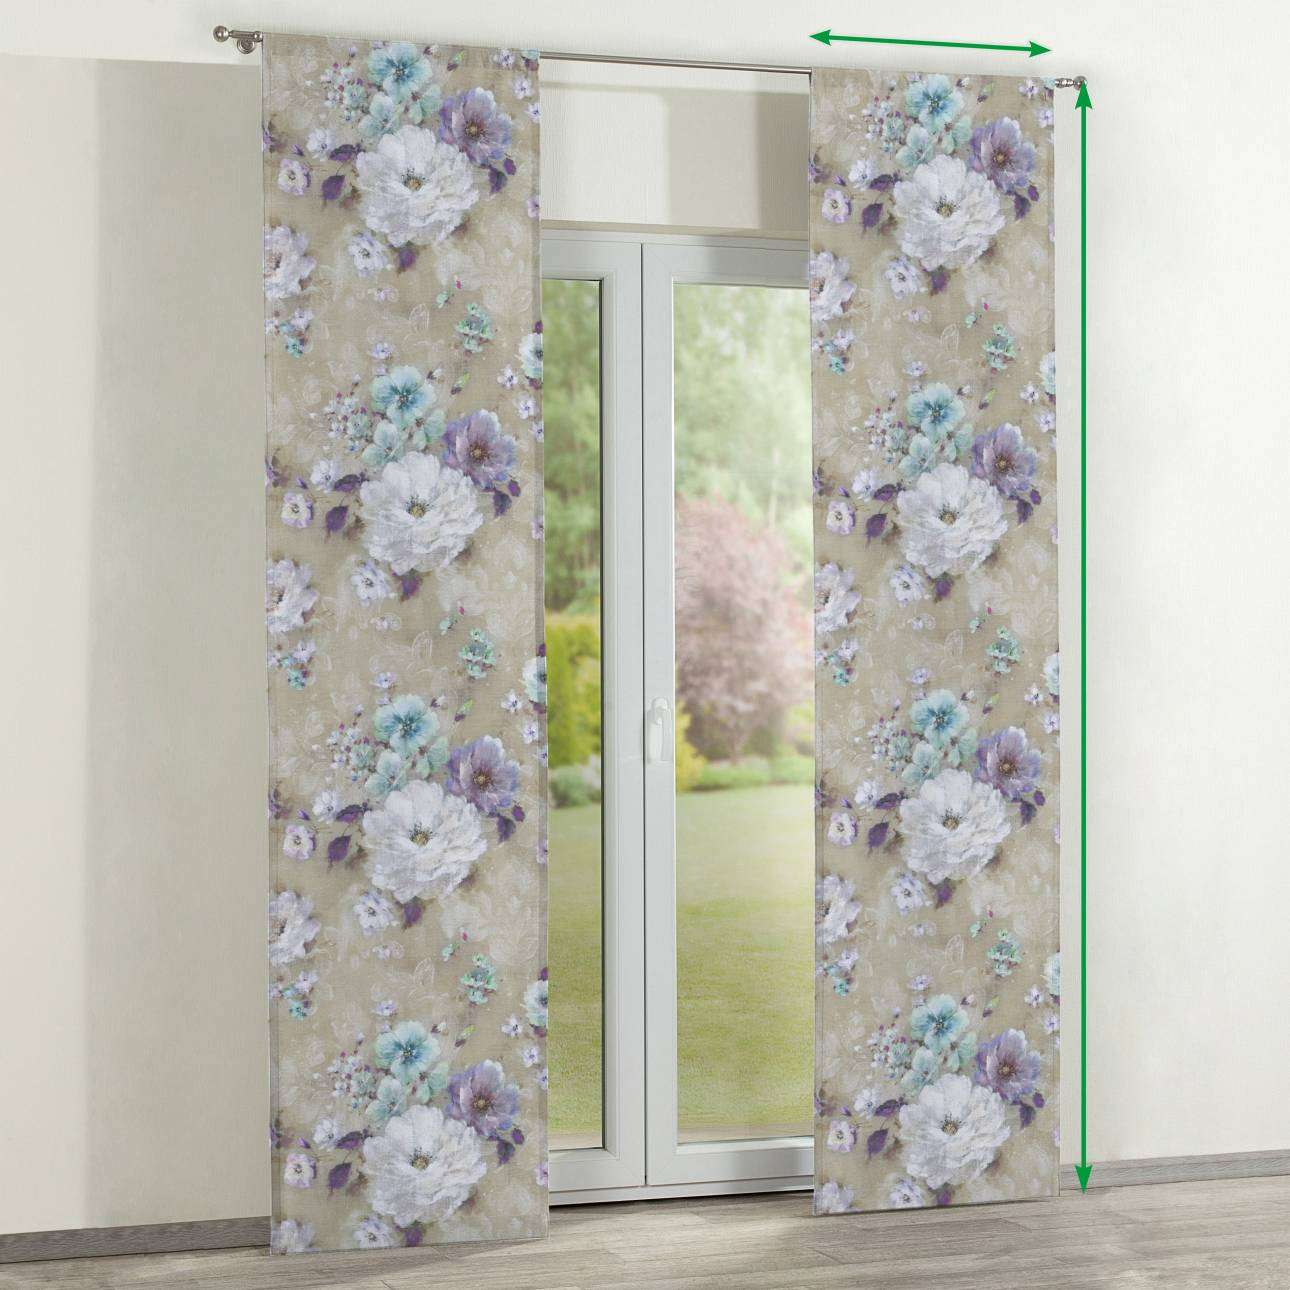 Slot panel curtains – Set of 2 in collection Monet, fabric: 137-82